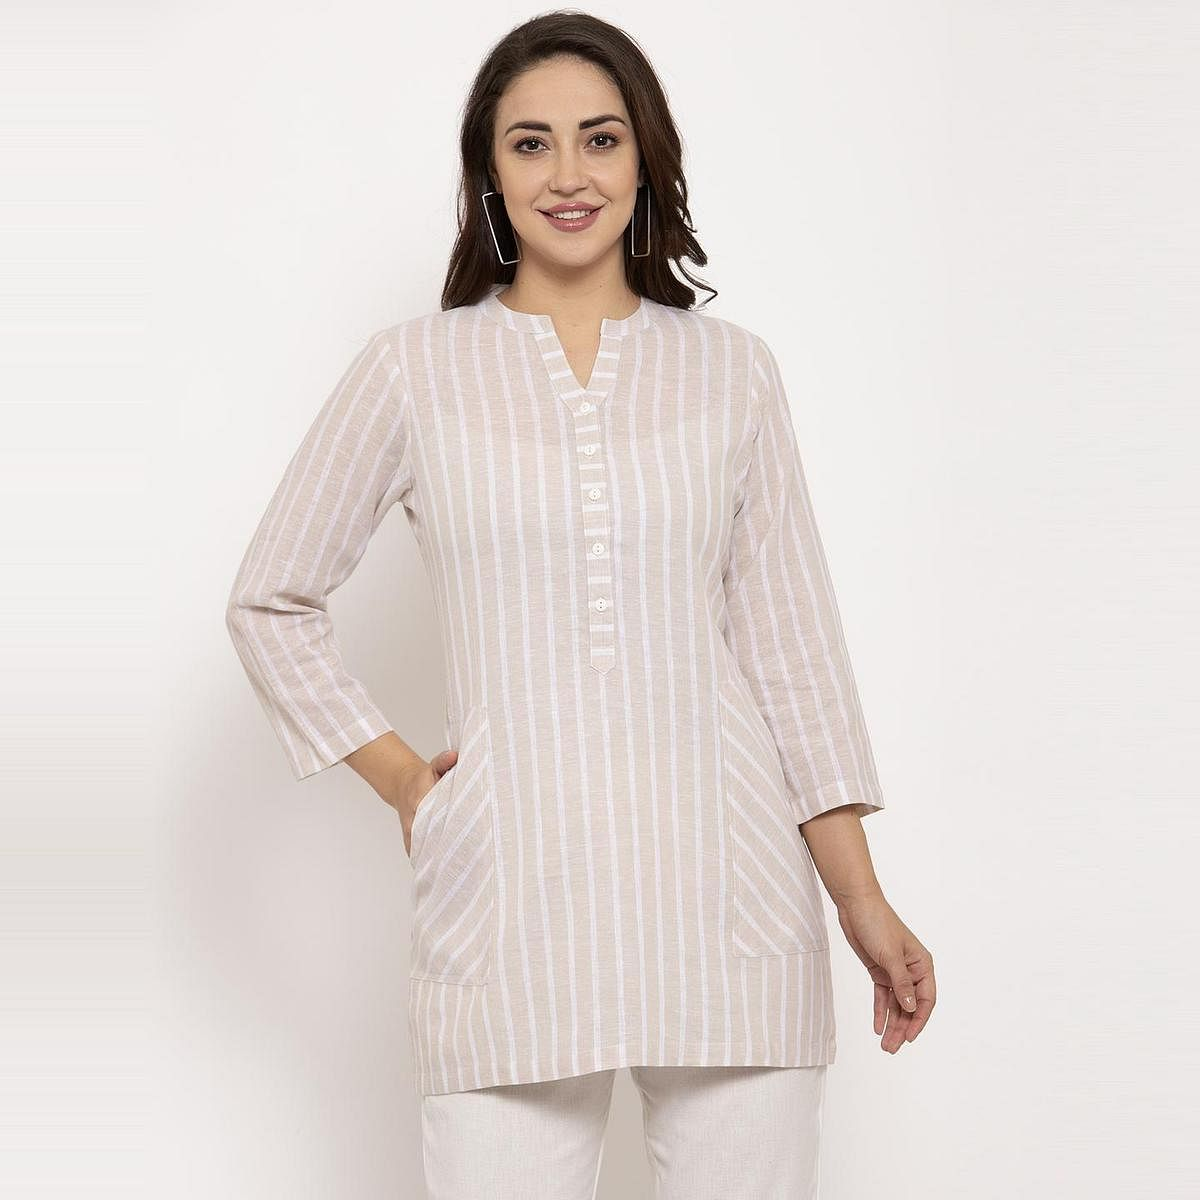 Ayaany - Beige Colored Casual Wear Striped Printed Pure Cotton Top